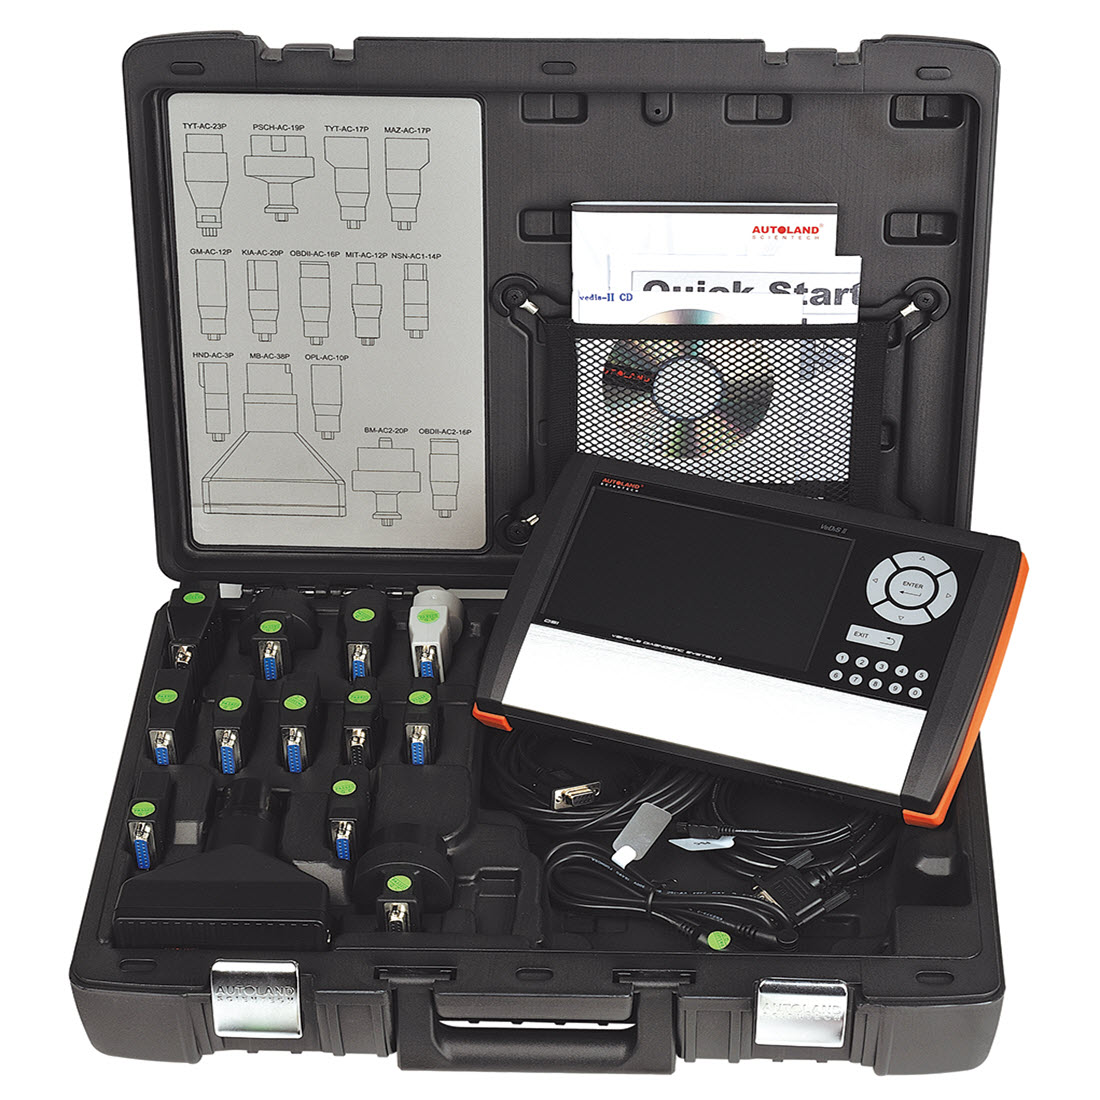 Tractor Scan Tool : Autoland scientech vedis ii deluxe kit for sale